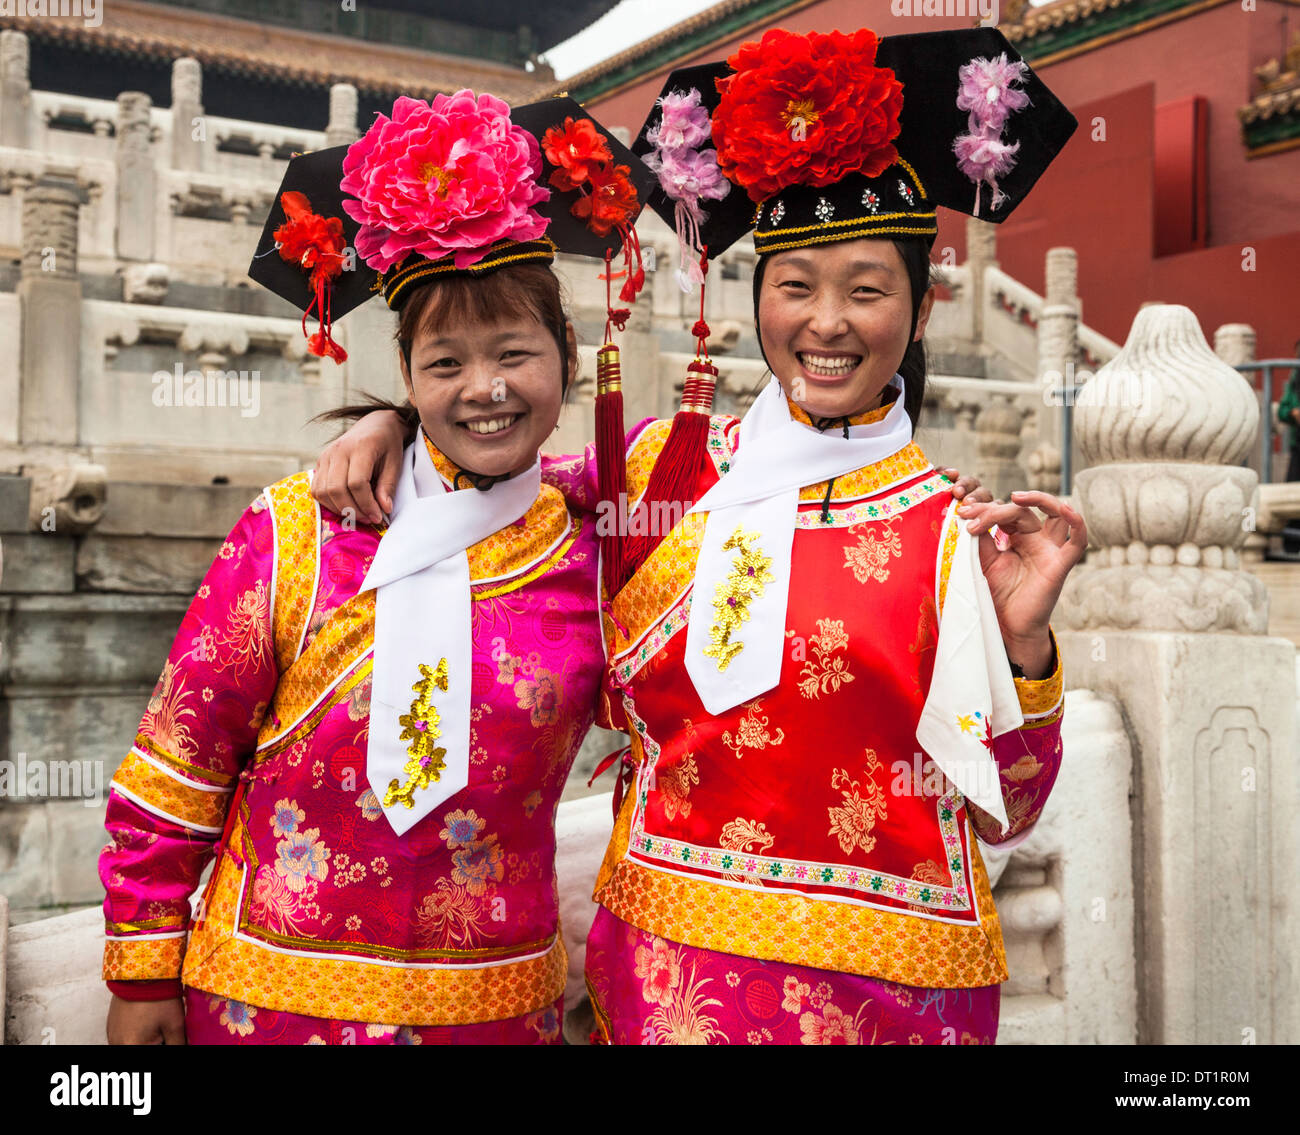 f4f7ca28b Young couple photographed in Traditional Chinese dress or Manchu from the  Qin DYNASTY costume as seen at the Forbidden City;